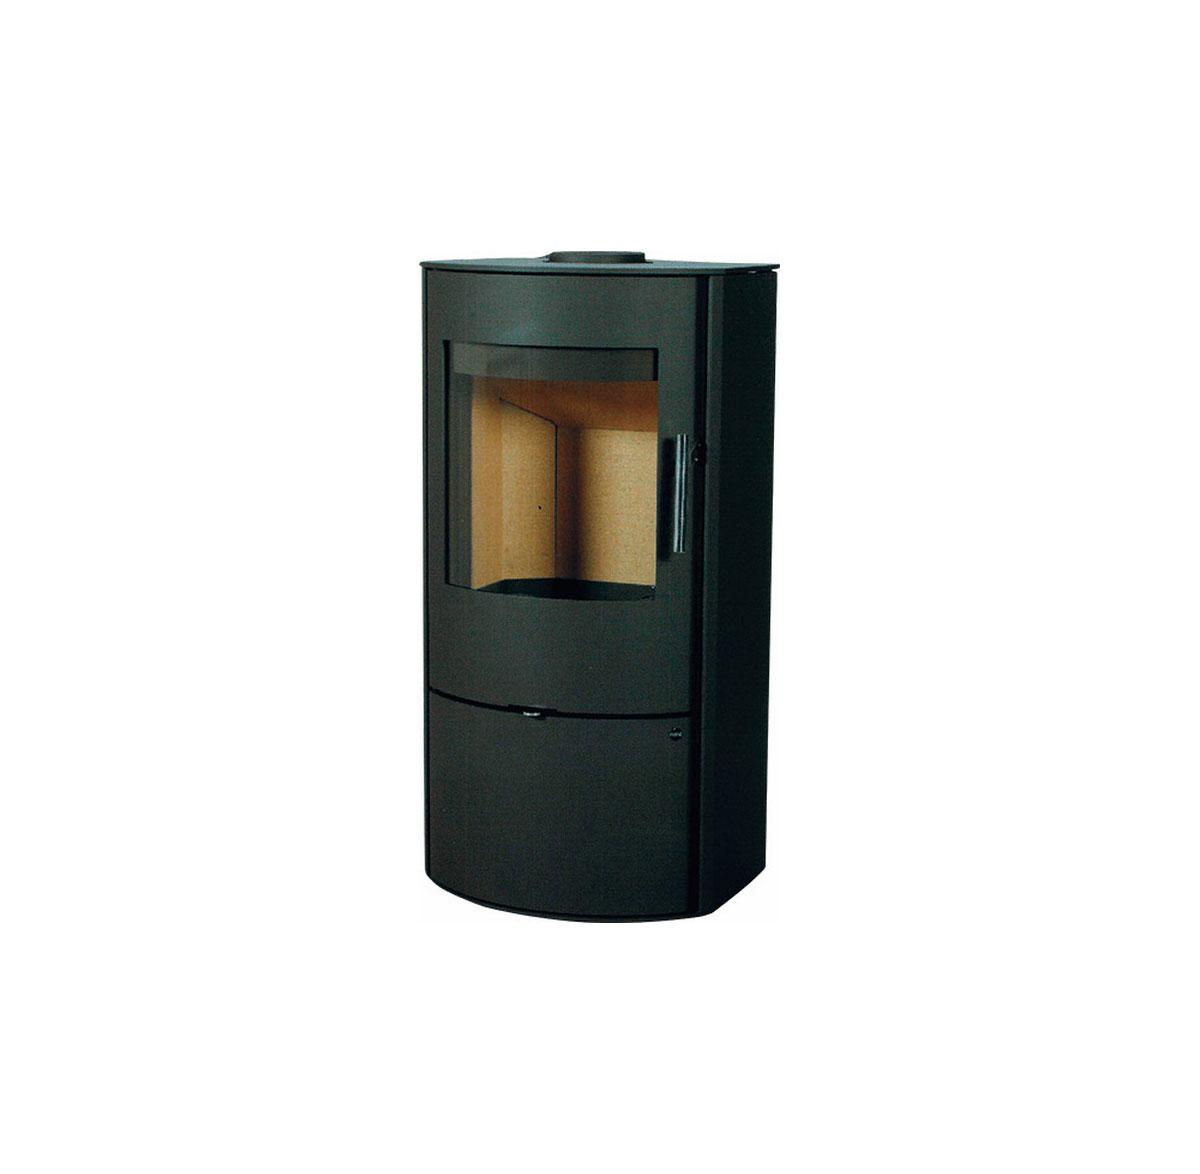 Jydepejsen Nord 3 Wood Burning Stove For Sale in South Africa